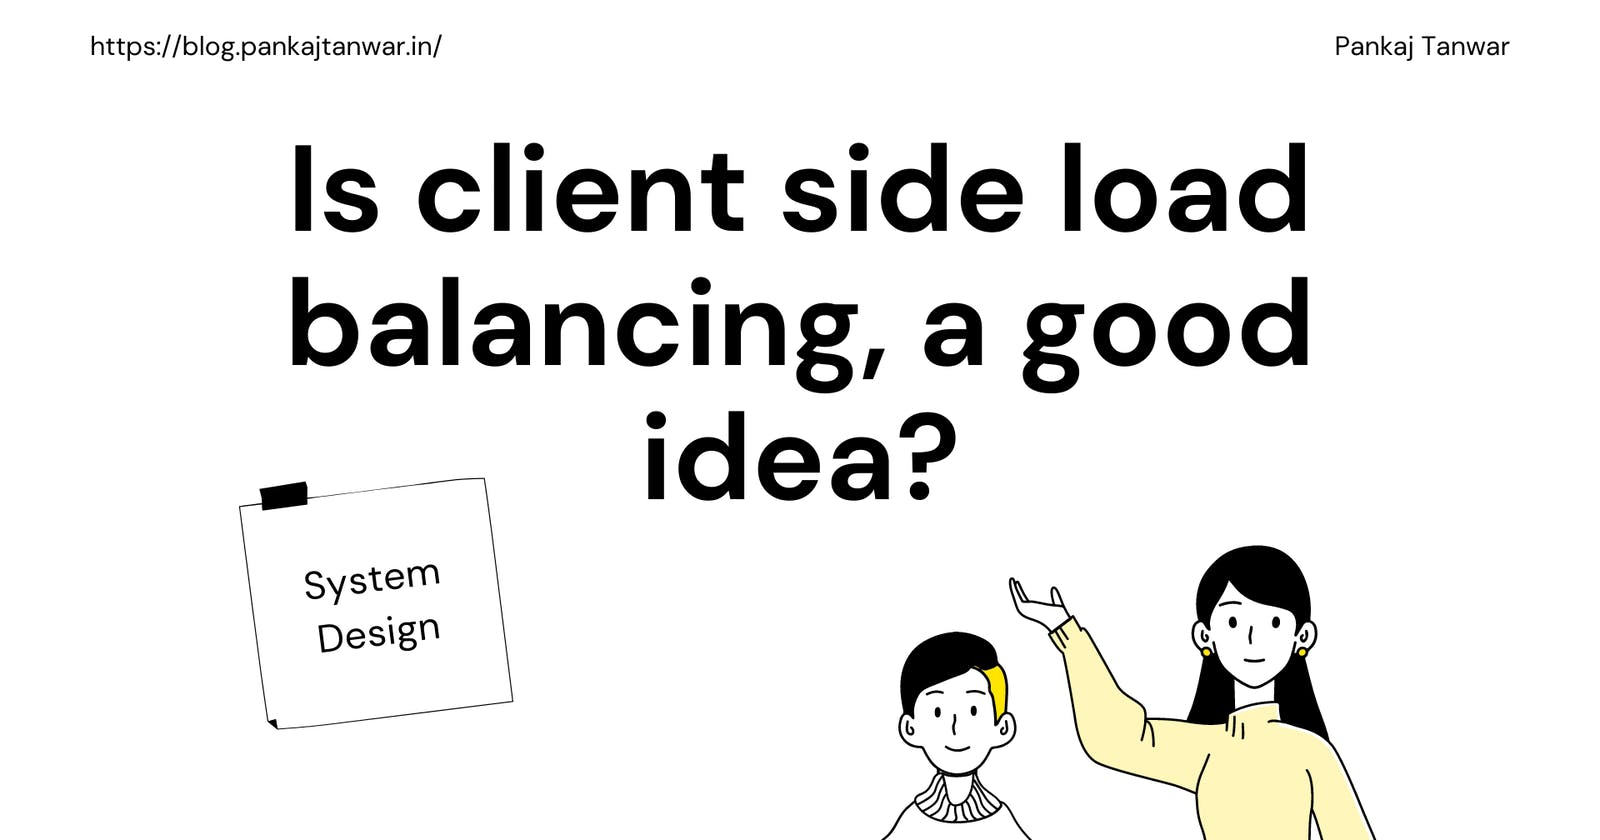 System Design : Is client side load balancing a good idea?